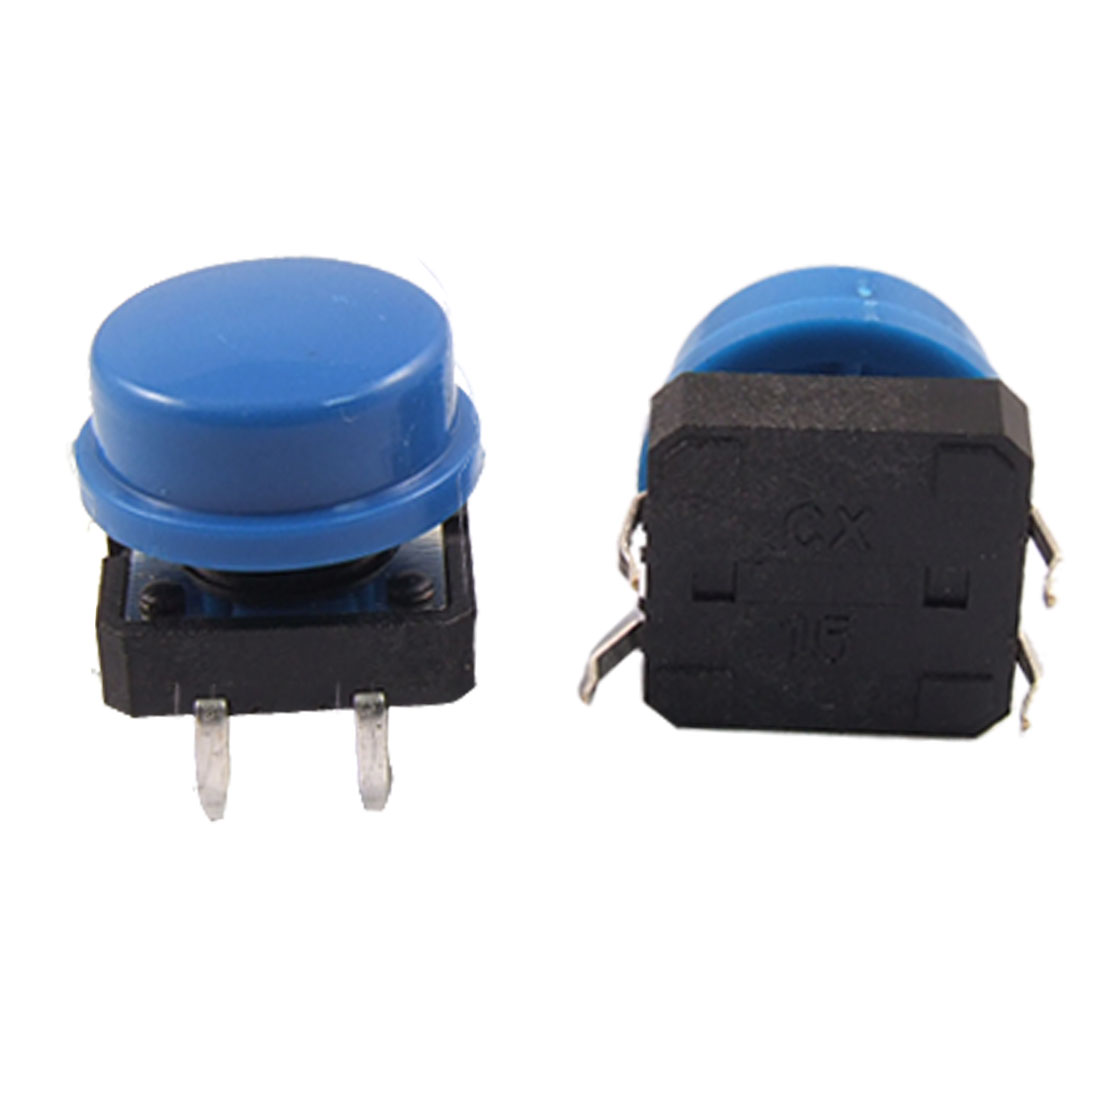 20pcs Momentary Tact Tactile Push Button Switch 12 x 12 x 12mm 4 Pin DIP w Cap